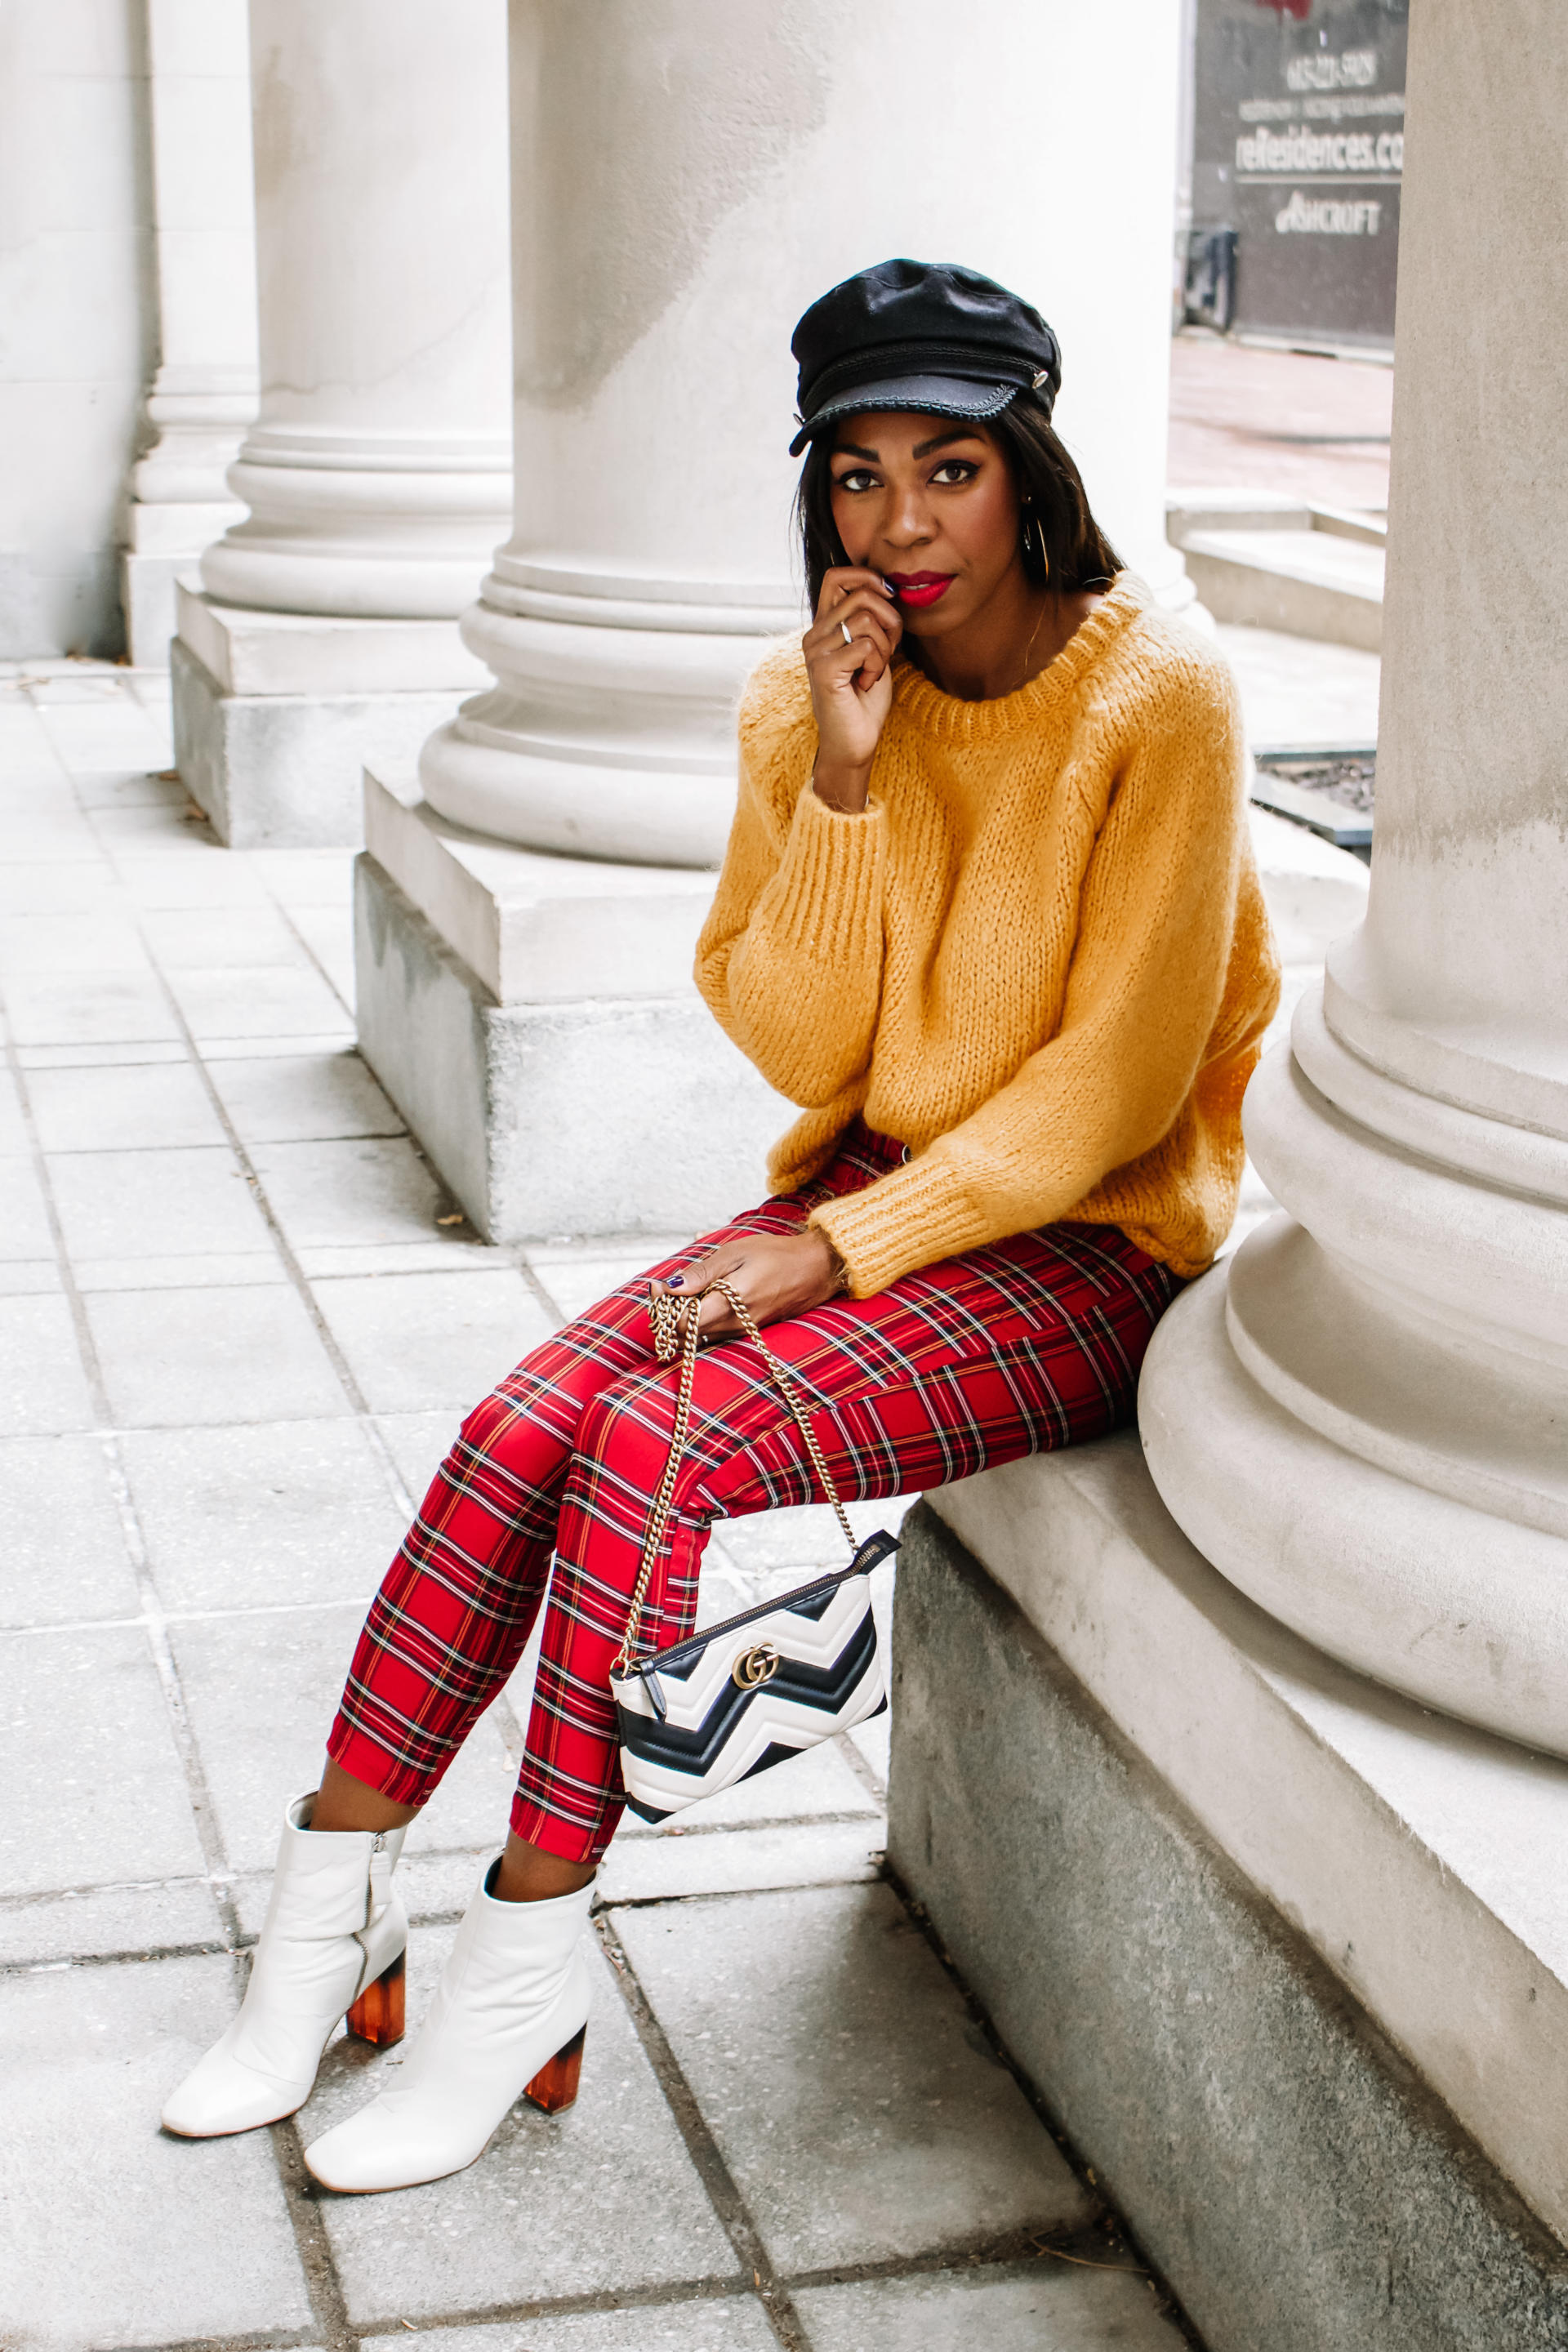 How To Make A Fun Statement This Holiday Season | Style Domination by Dominique Baker